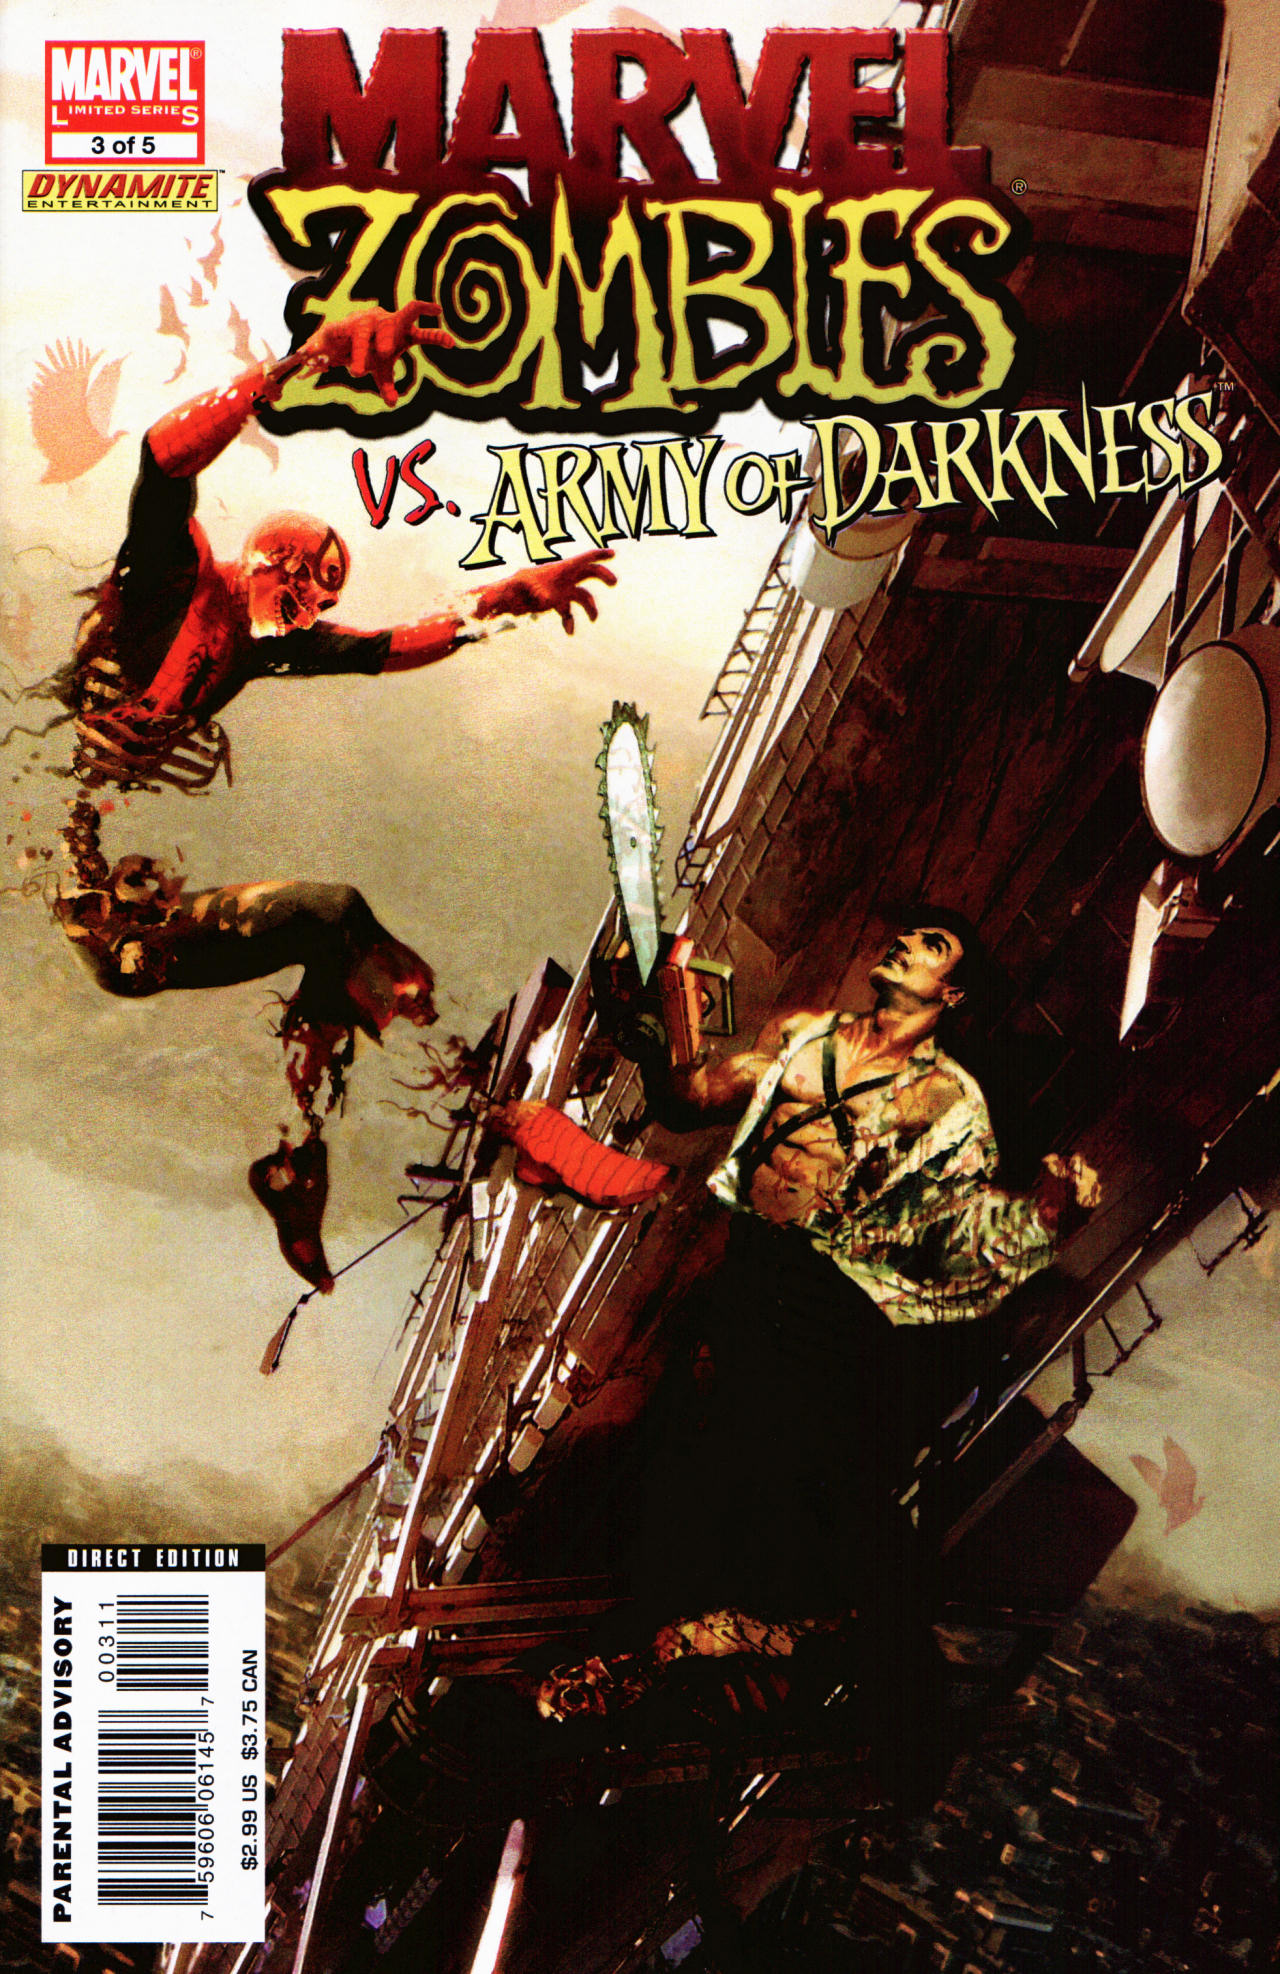 Marvel_Zombies_Vs._Army_of_Darkness_Vol_1_3